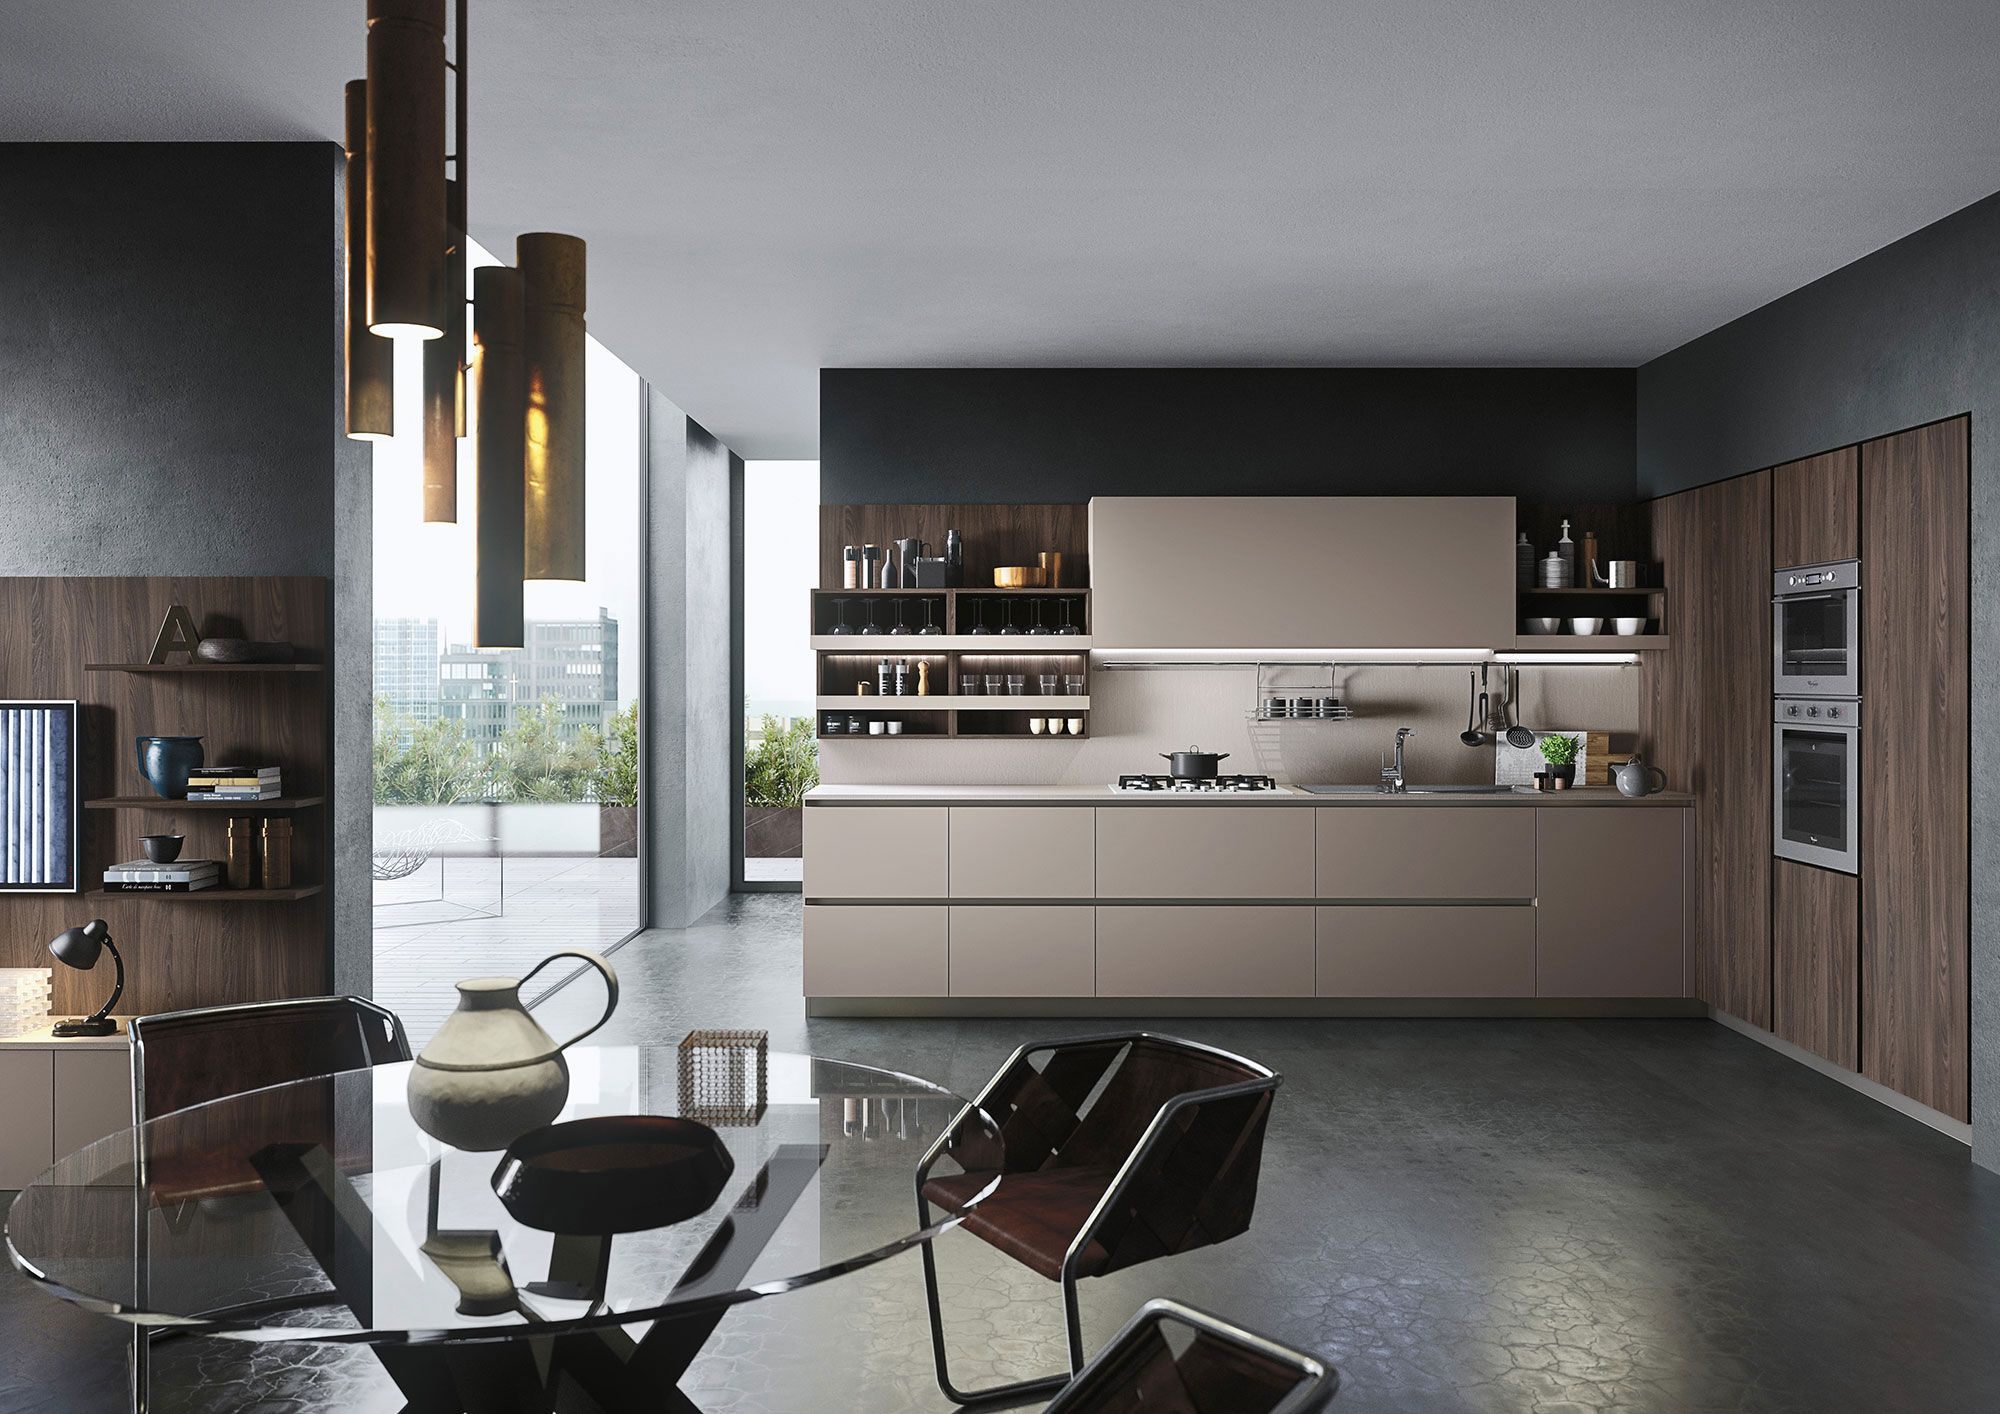 Kitchen First With Doors In Havana Oak Melamine And Soft Cappuccino Brown Melamin Contemporary Style Kitchen Kitchen Projects Design Industrial Kitchen Design